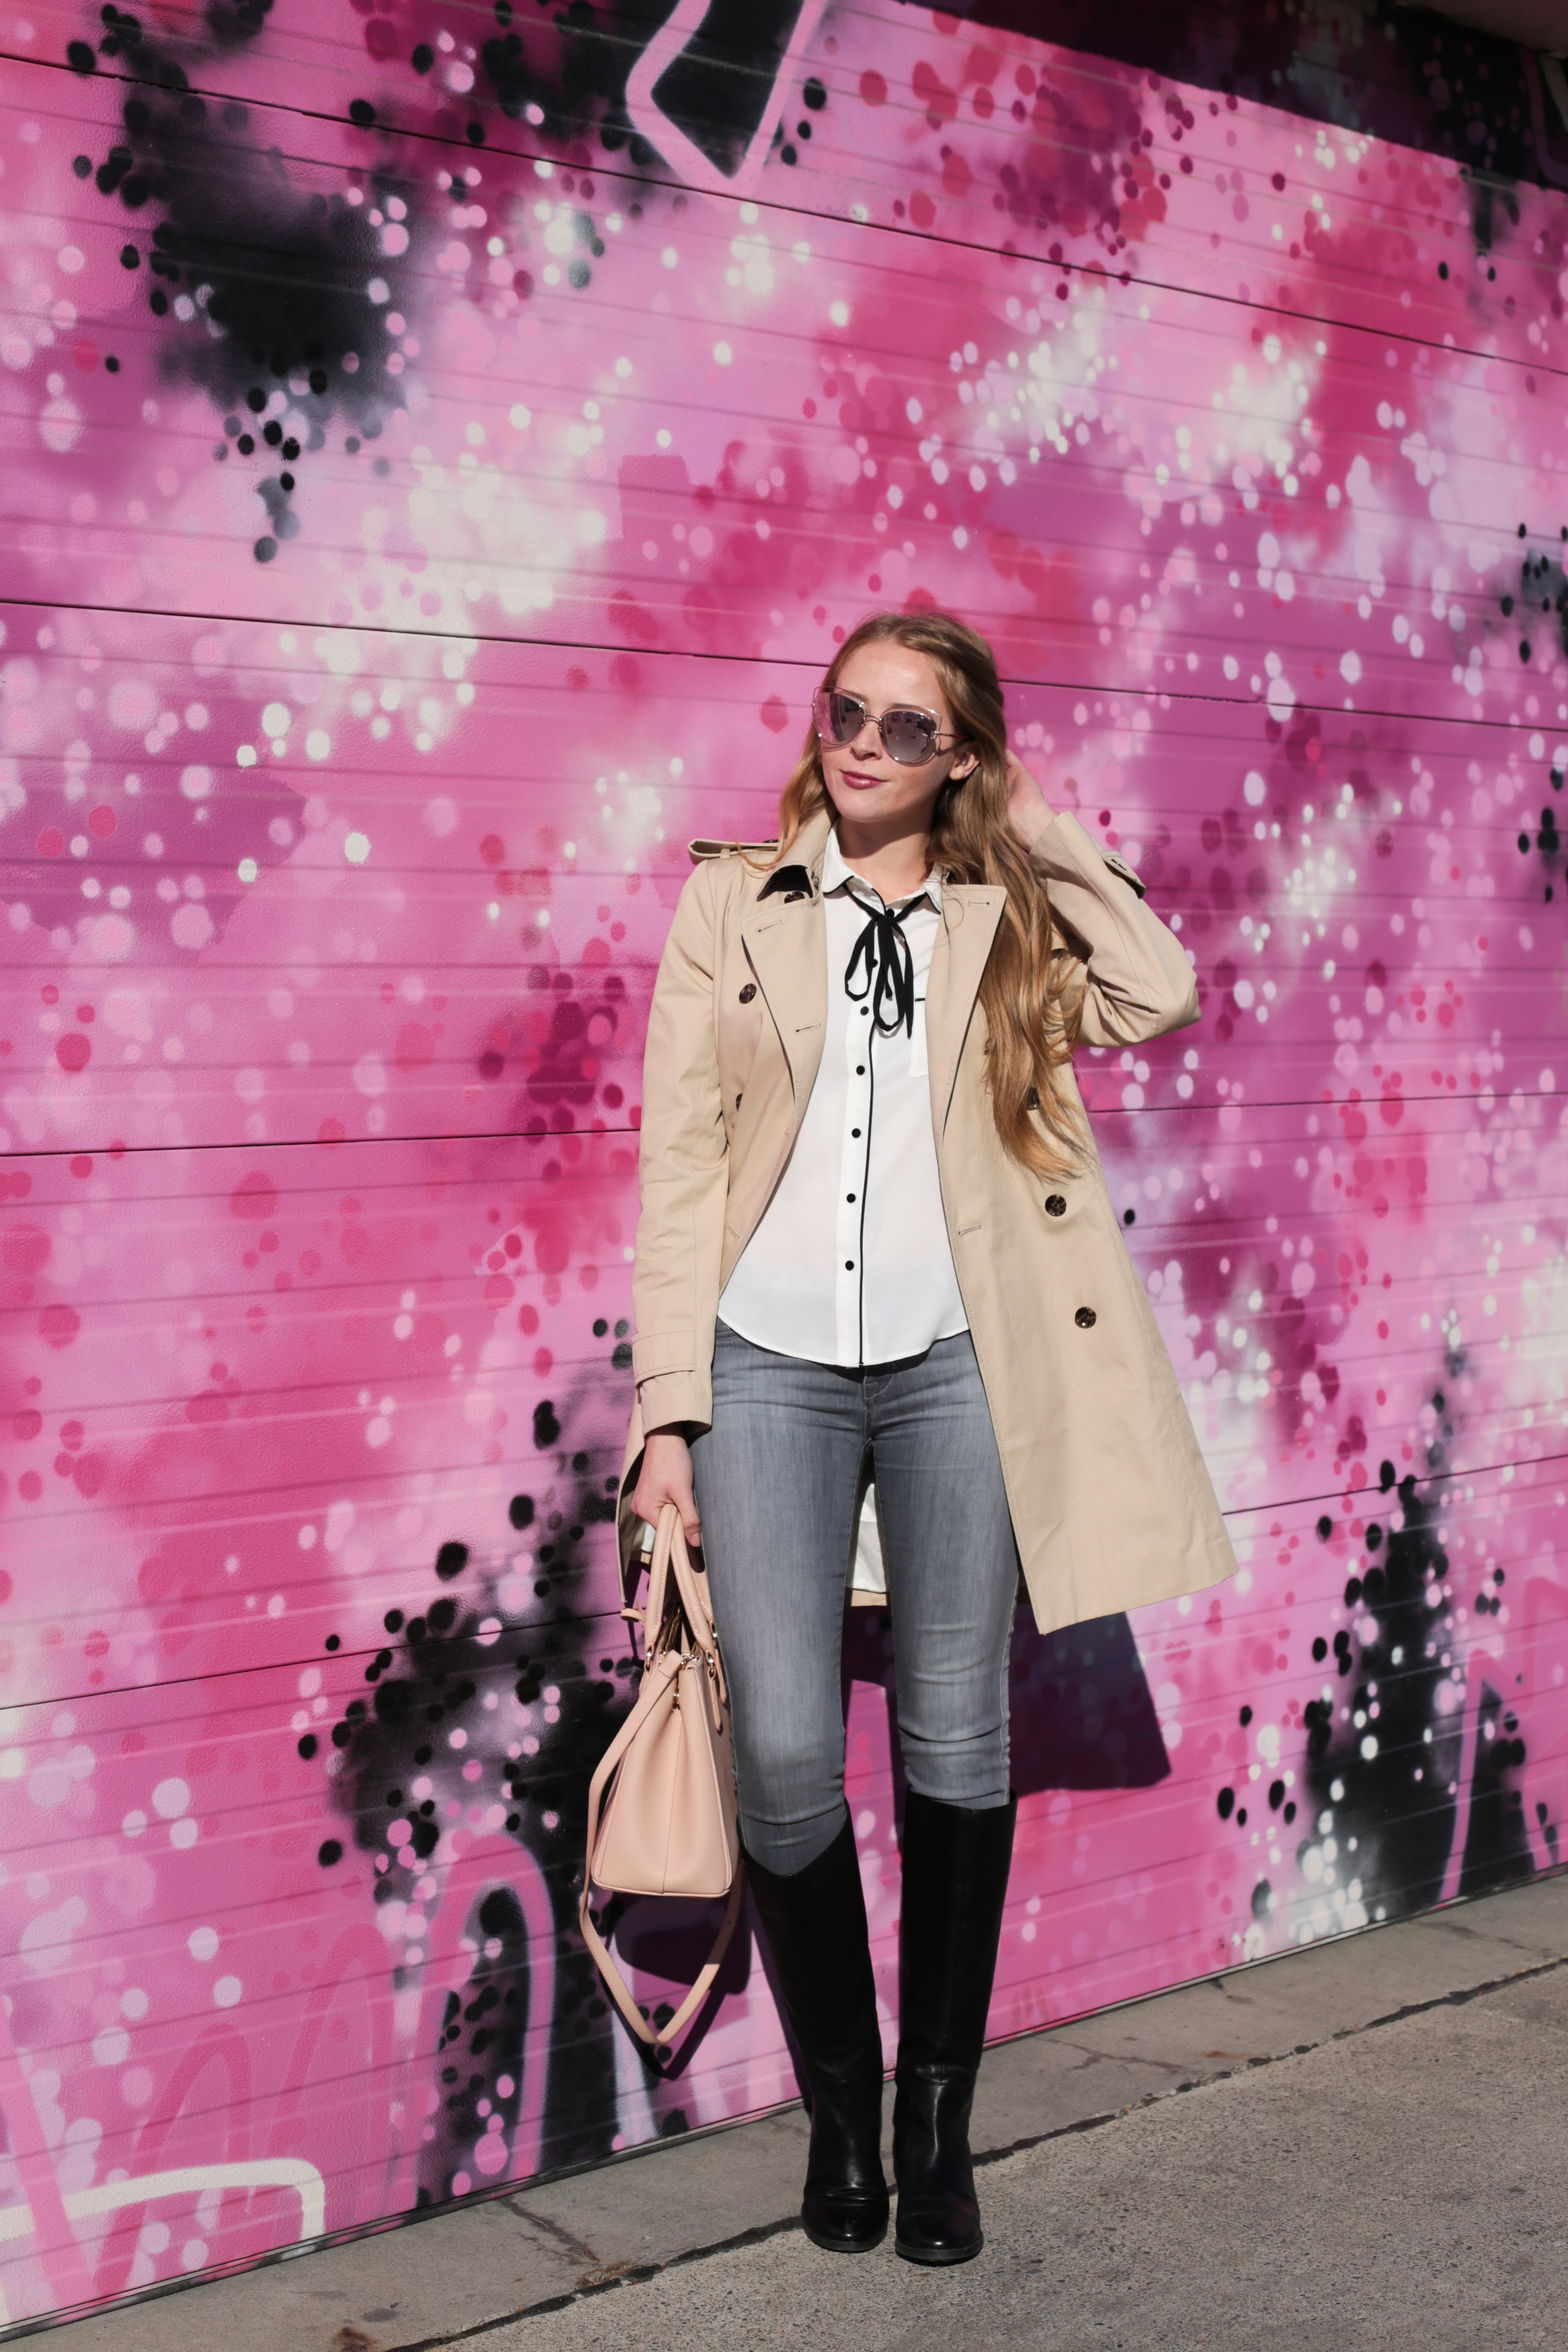 5 Classic pieces for fall